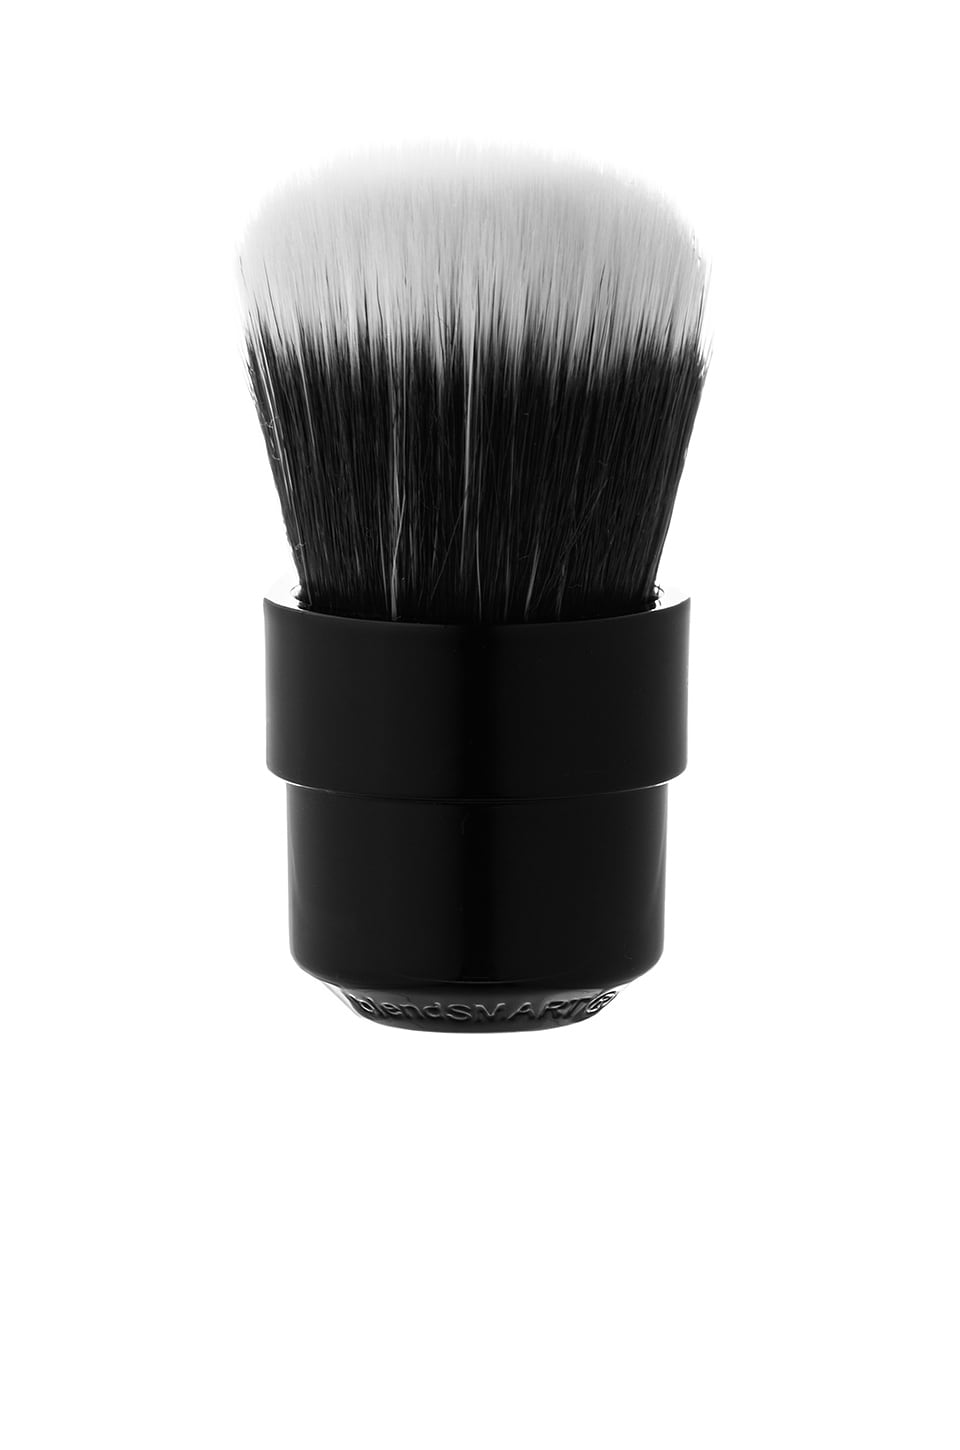 BLENDSMART2 FULL COVERAGE BRUSH HEAD